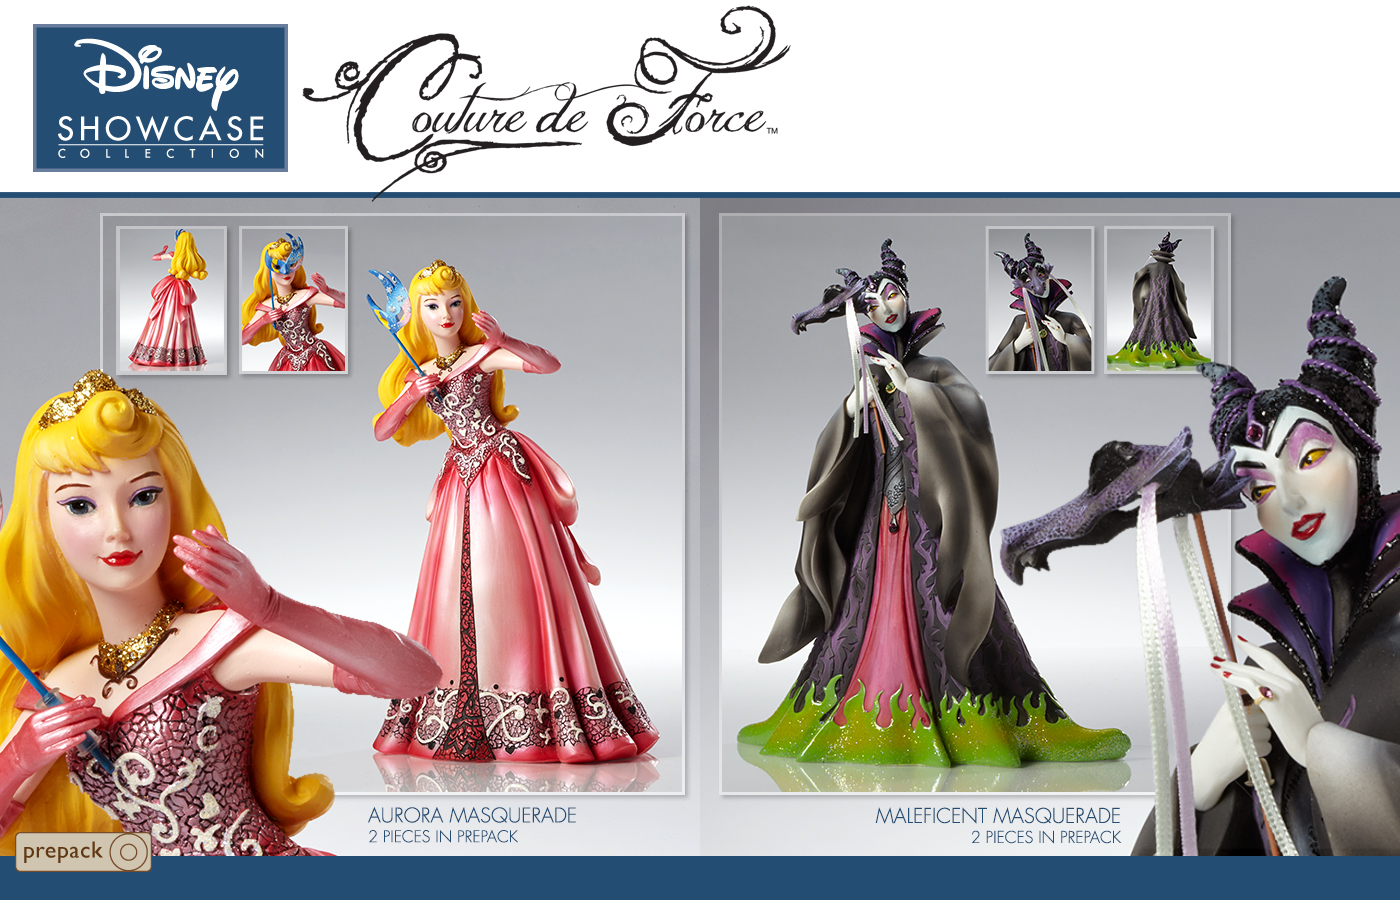 New Masquerade Ball Couture De Force Figures Coming Soon